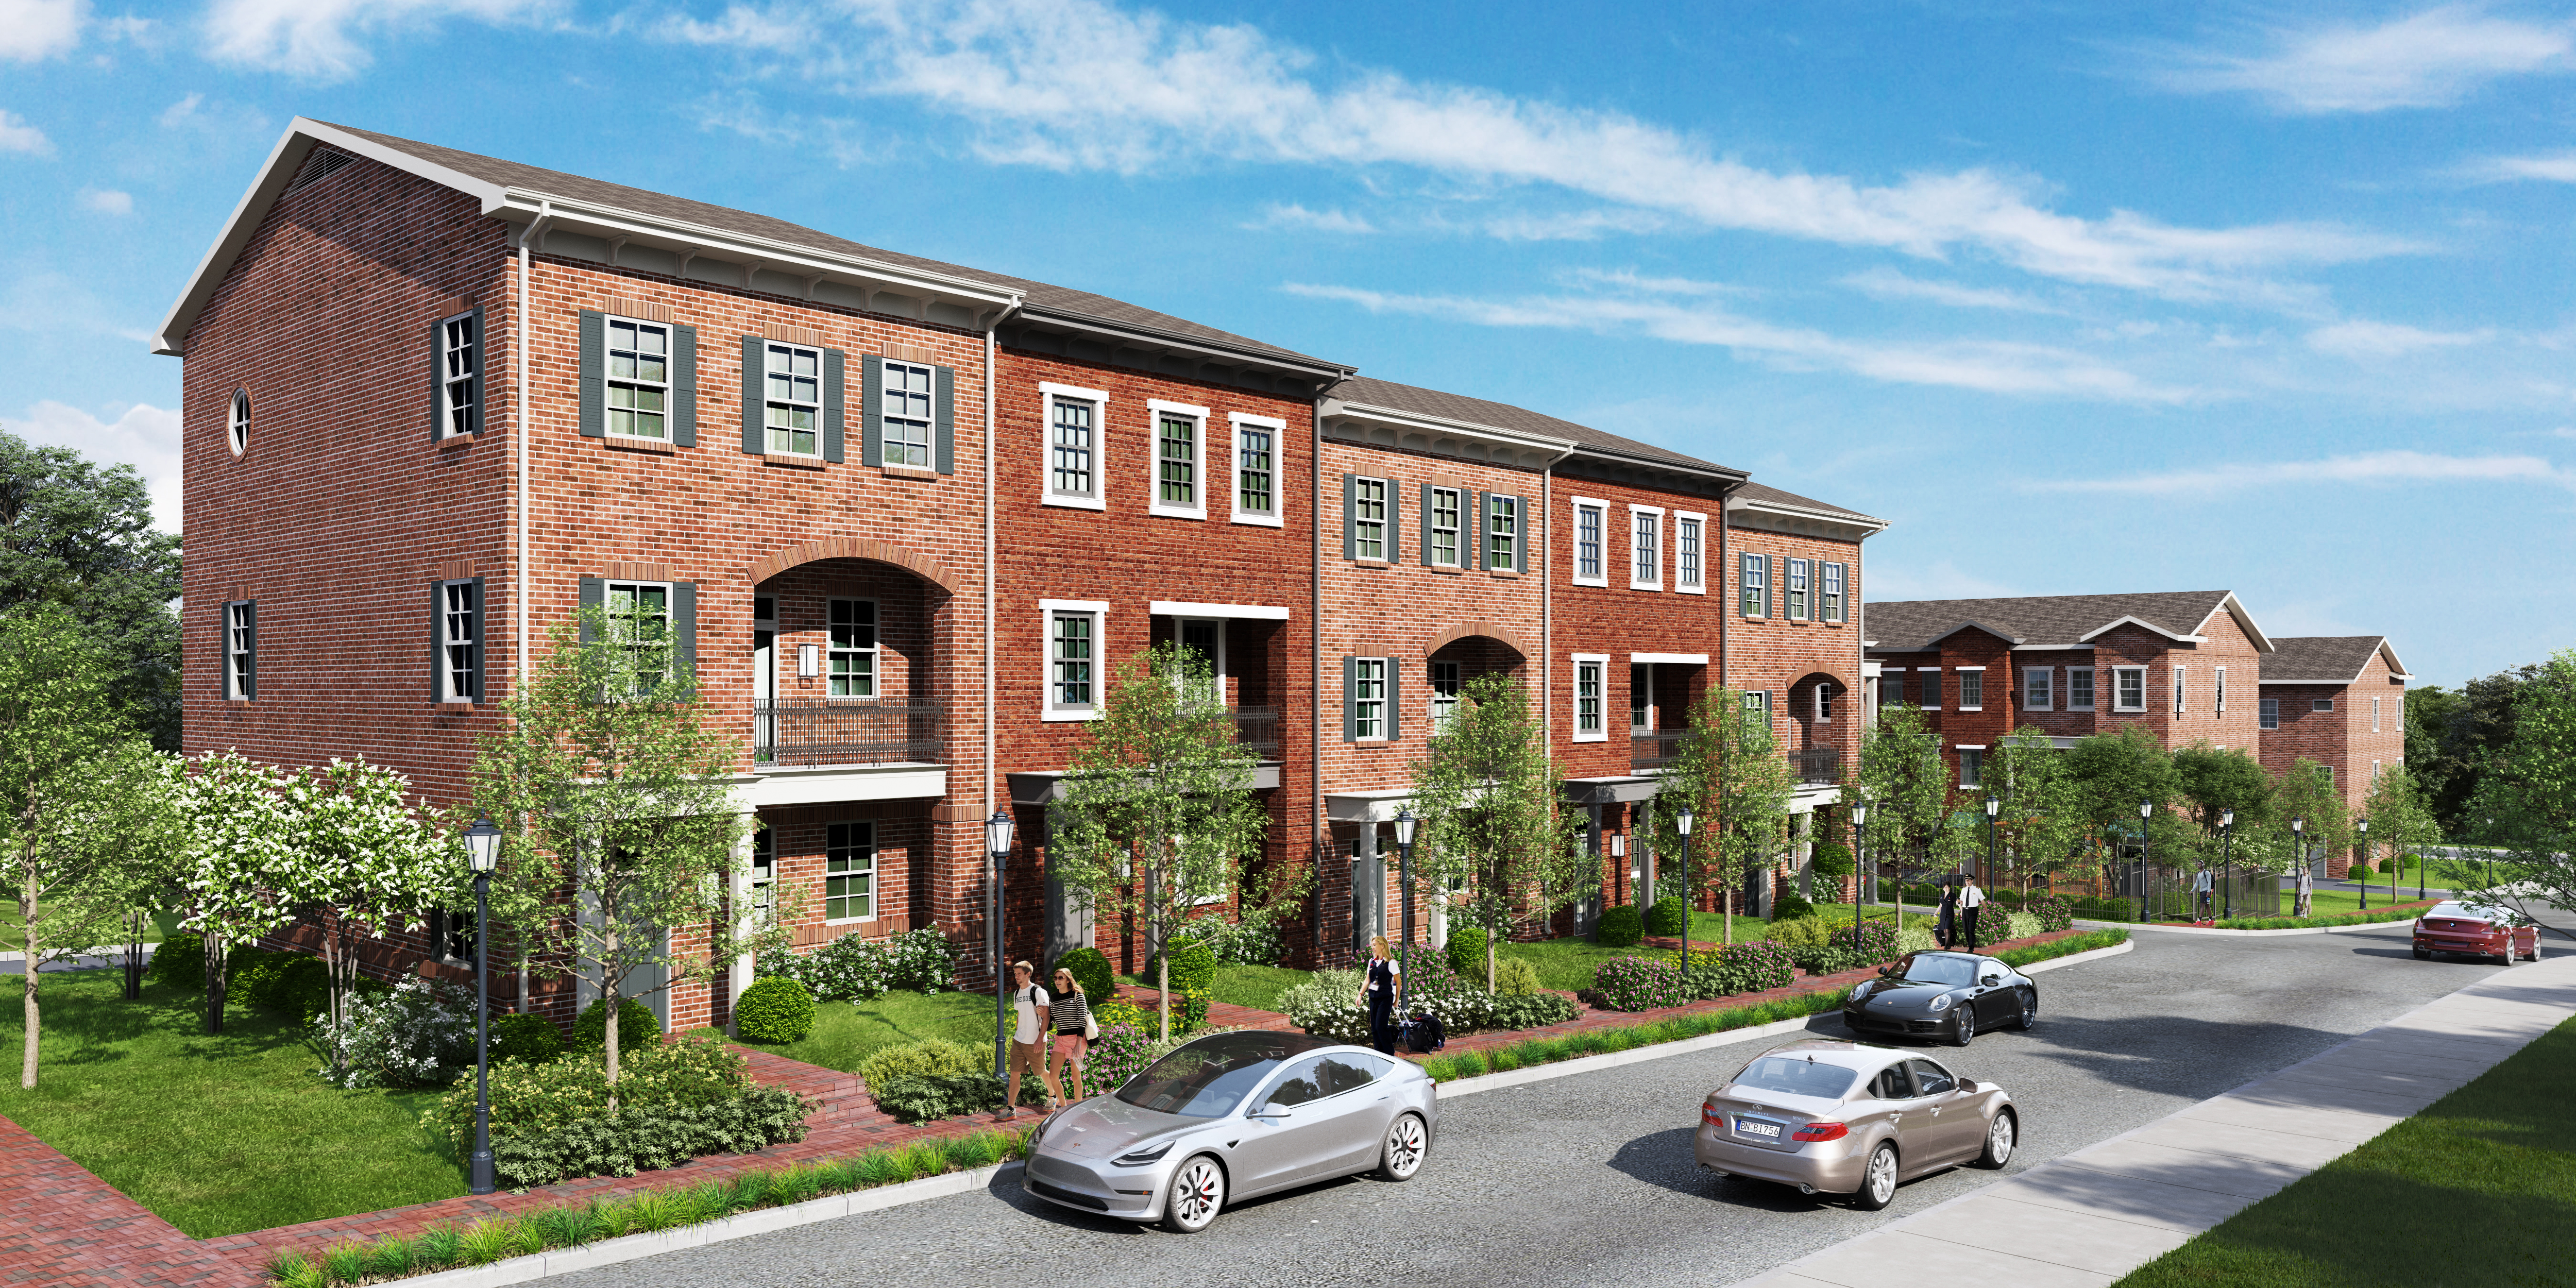 a rendering of the townhomes